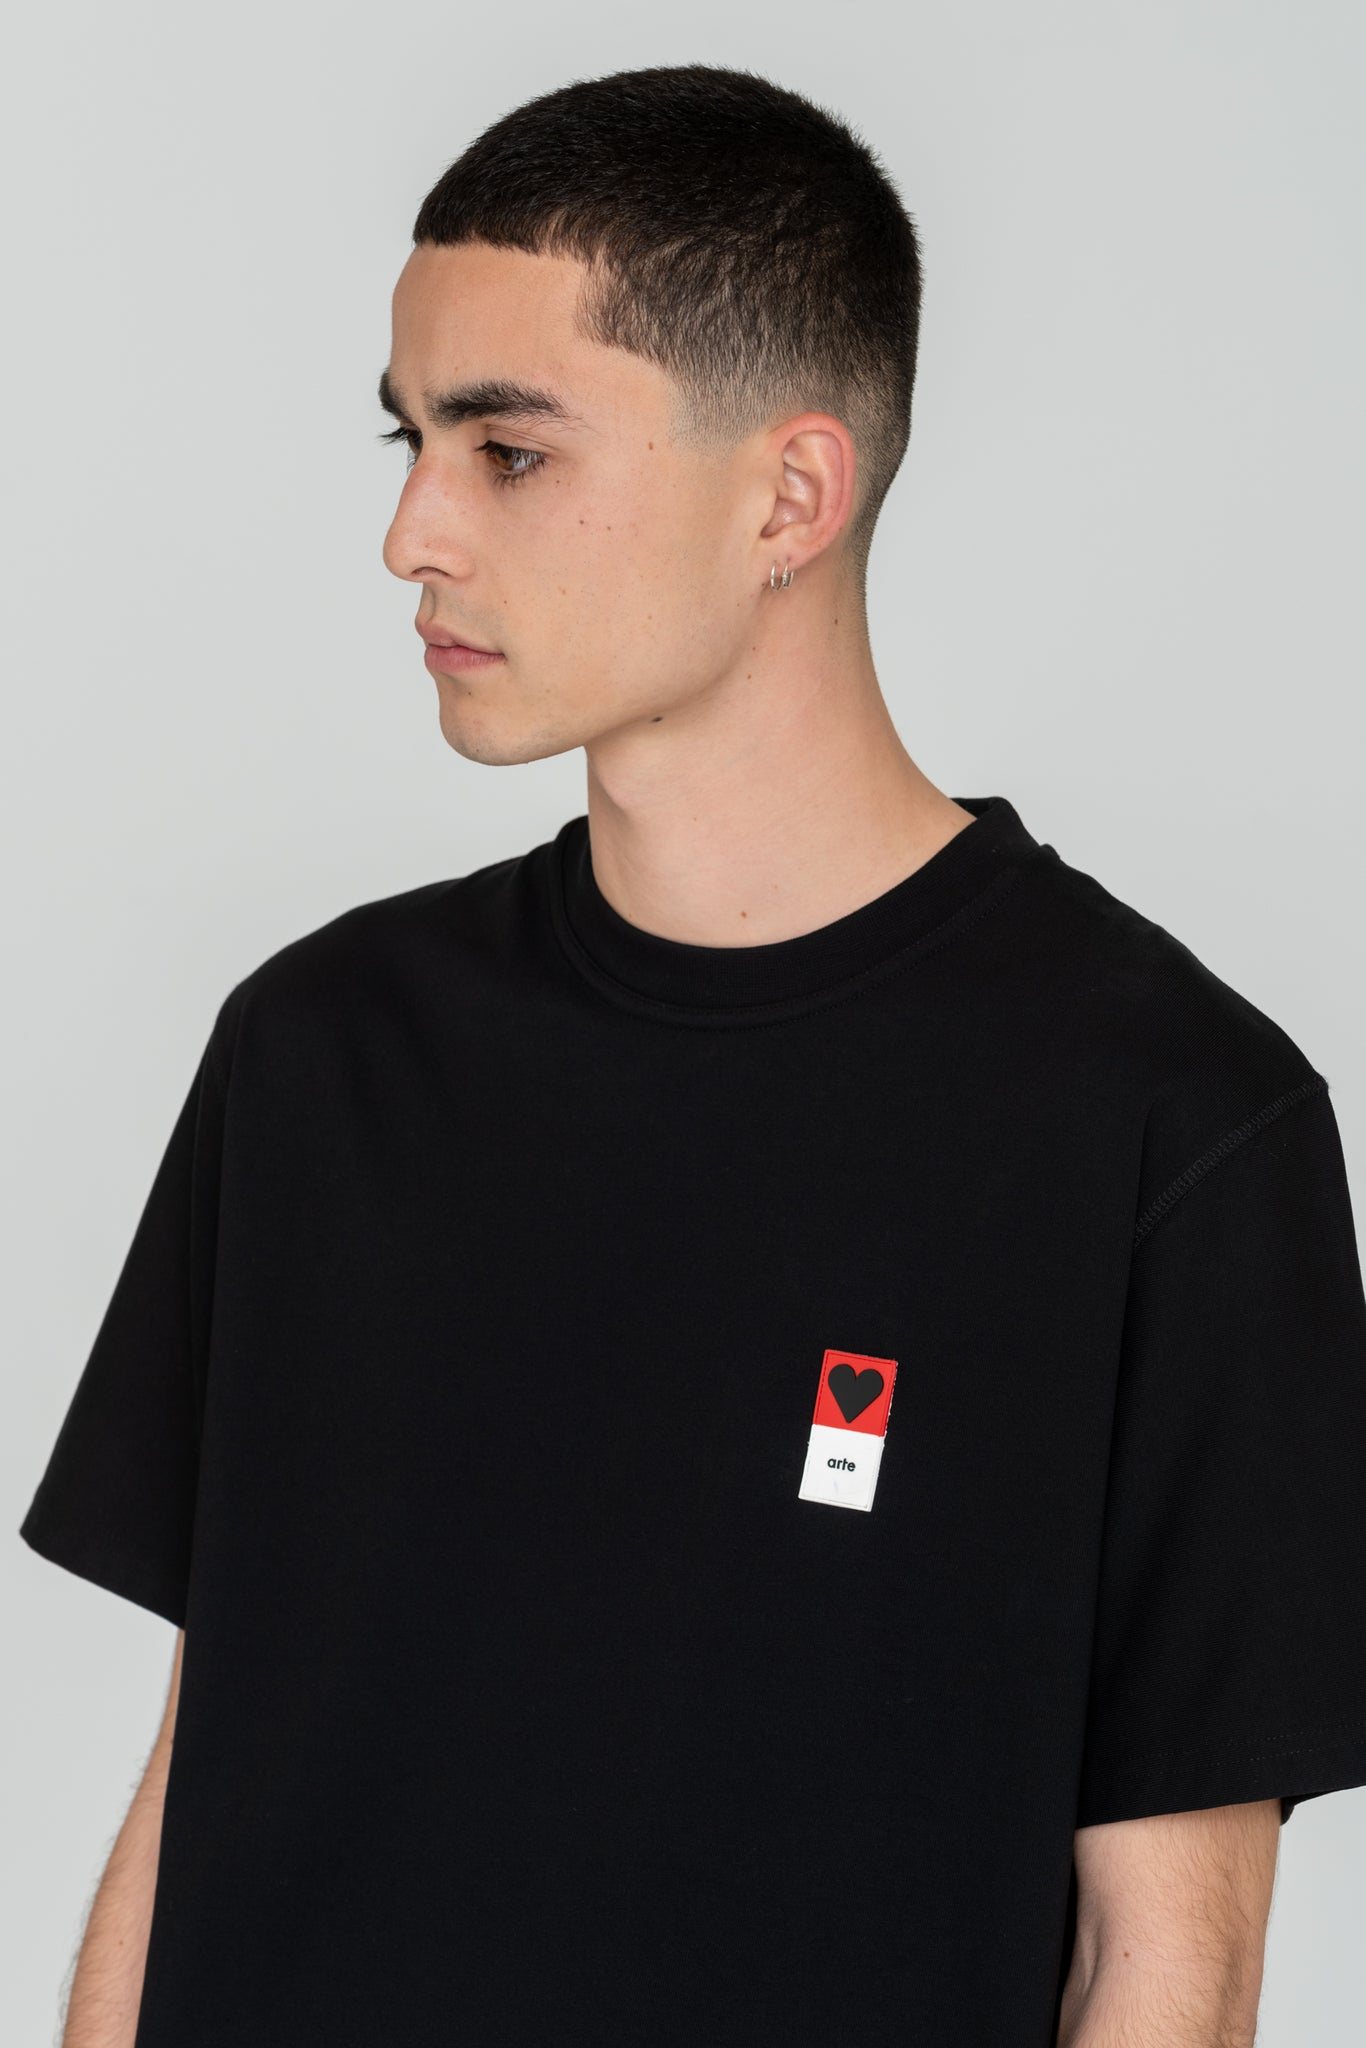 Troy Heart Patch Black T-shirt - Arte Antwerp